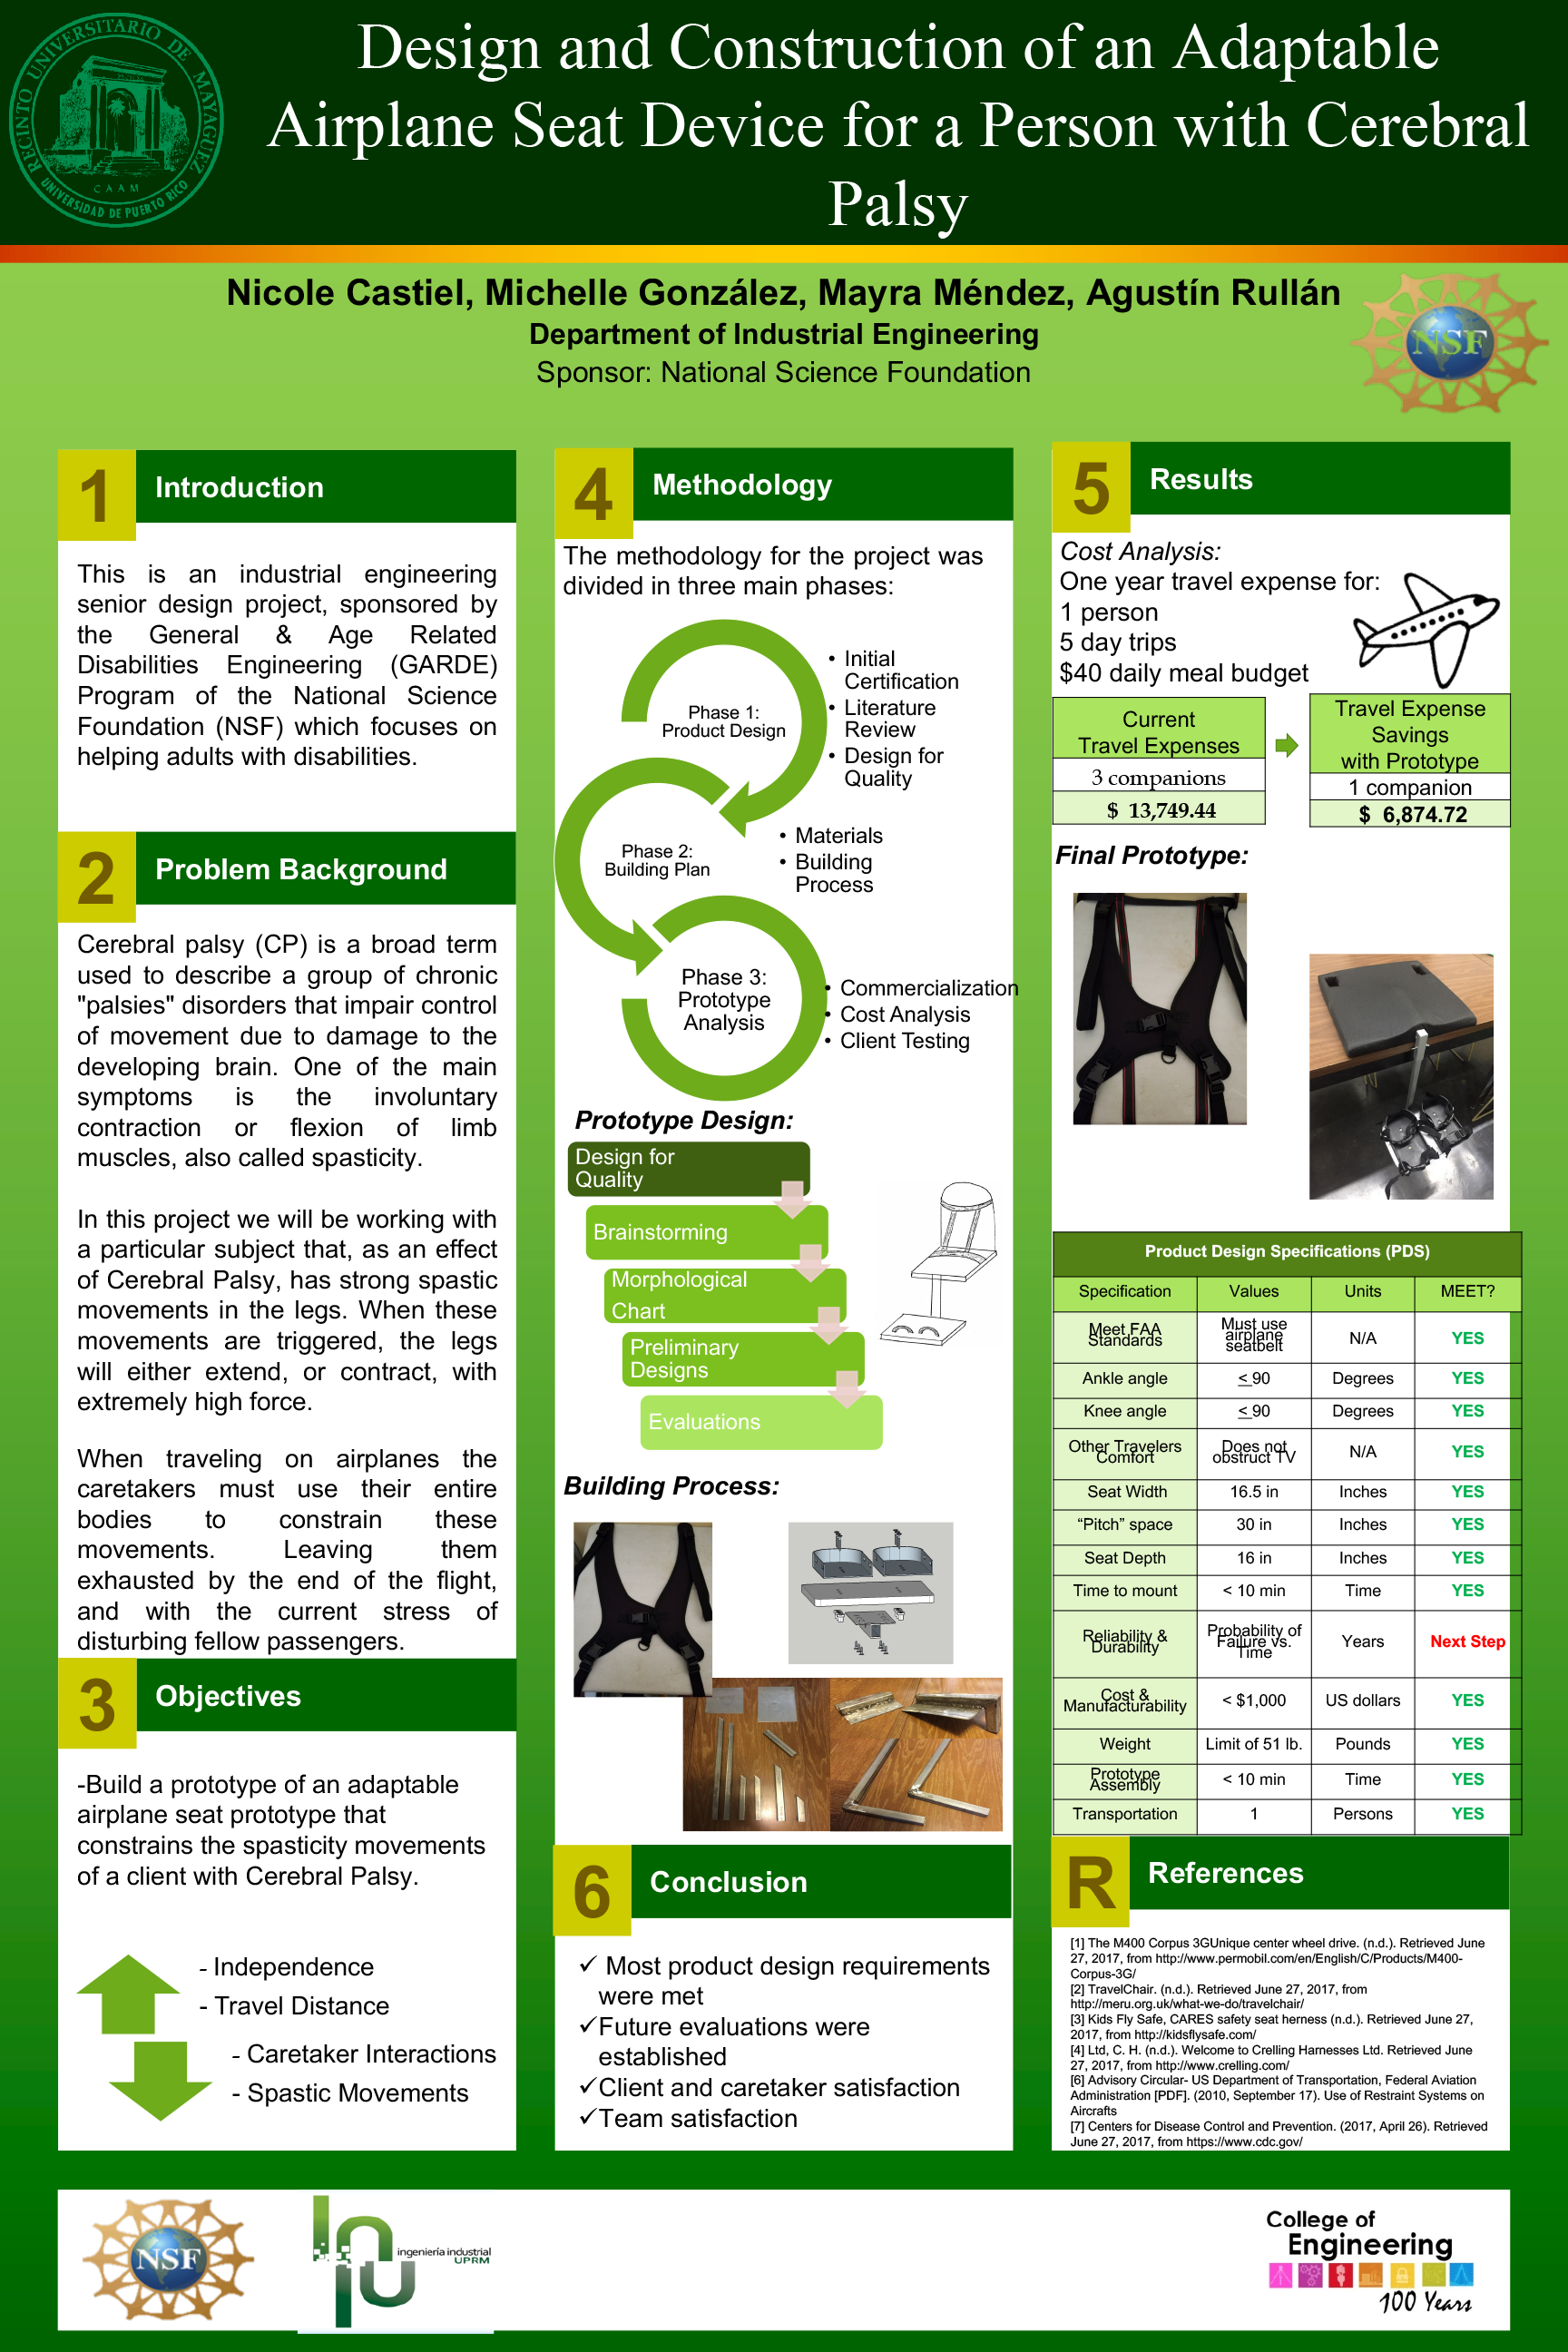 Design and Construction of an Adaptable Airplane Seat Device for a Person with Cerebral Palsy (Poster)